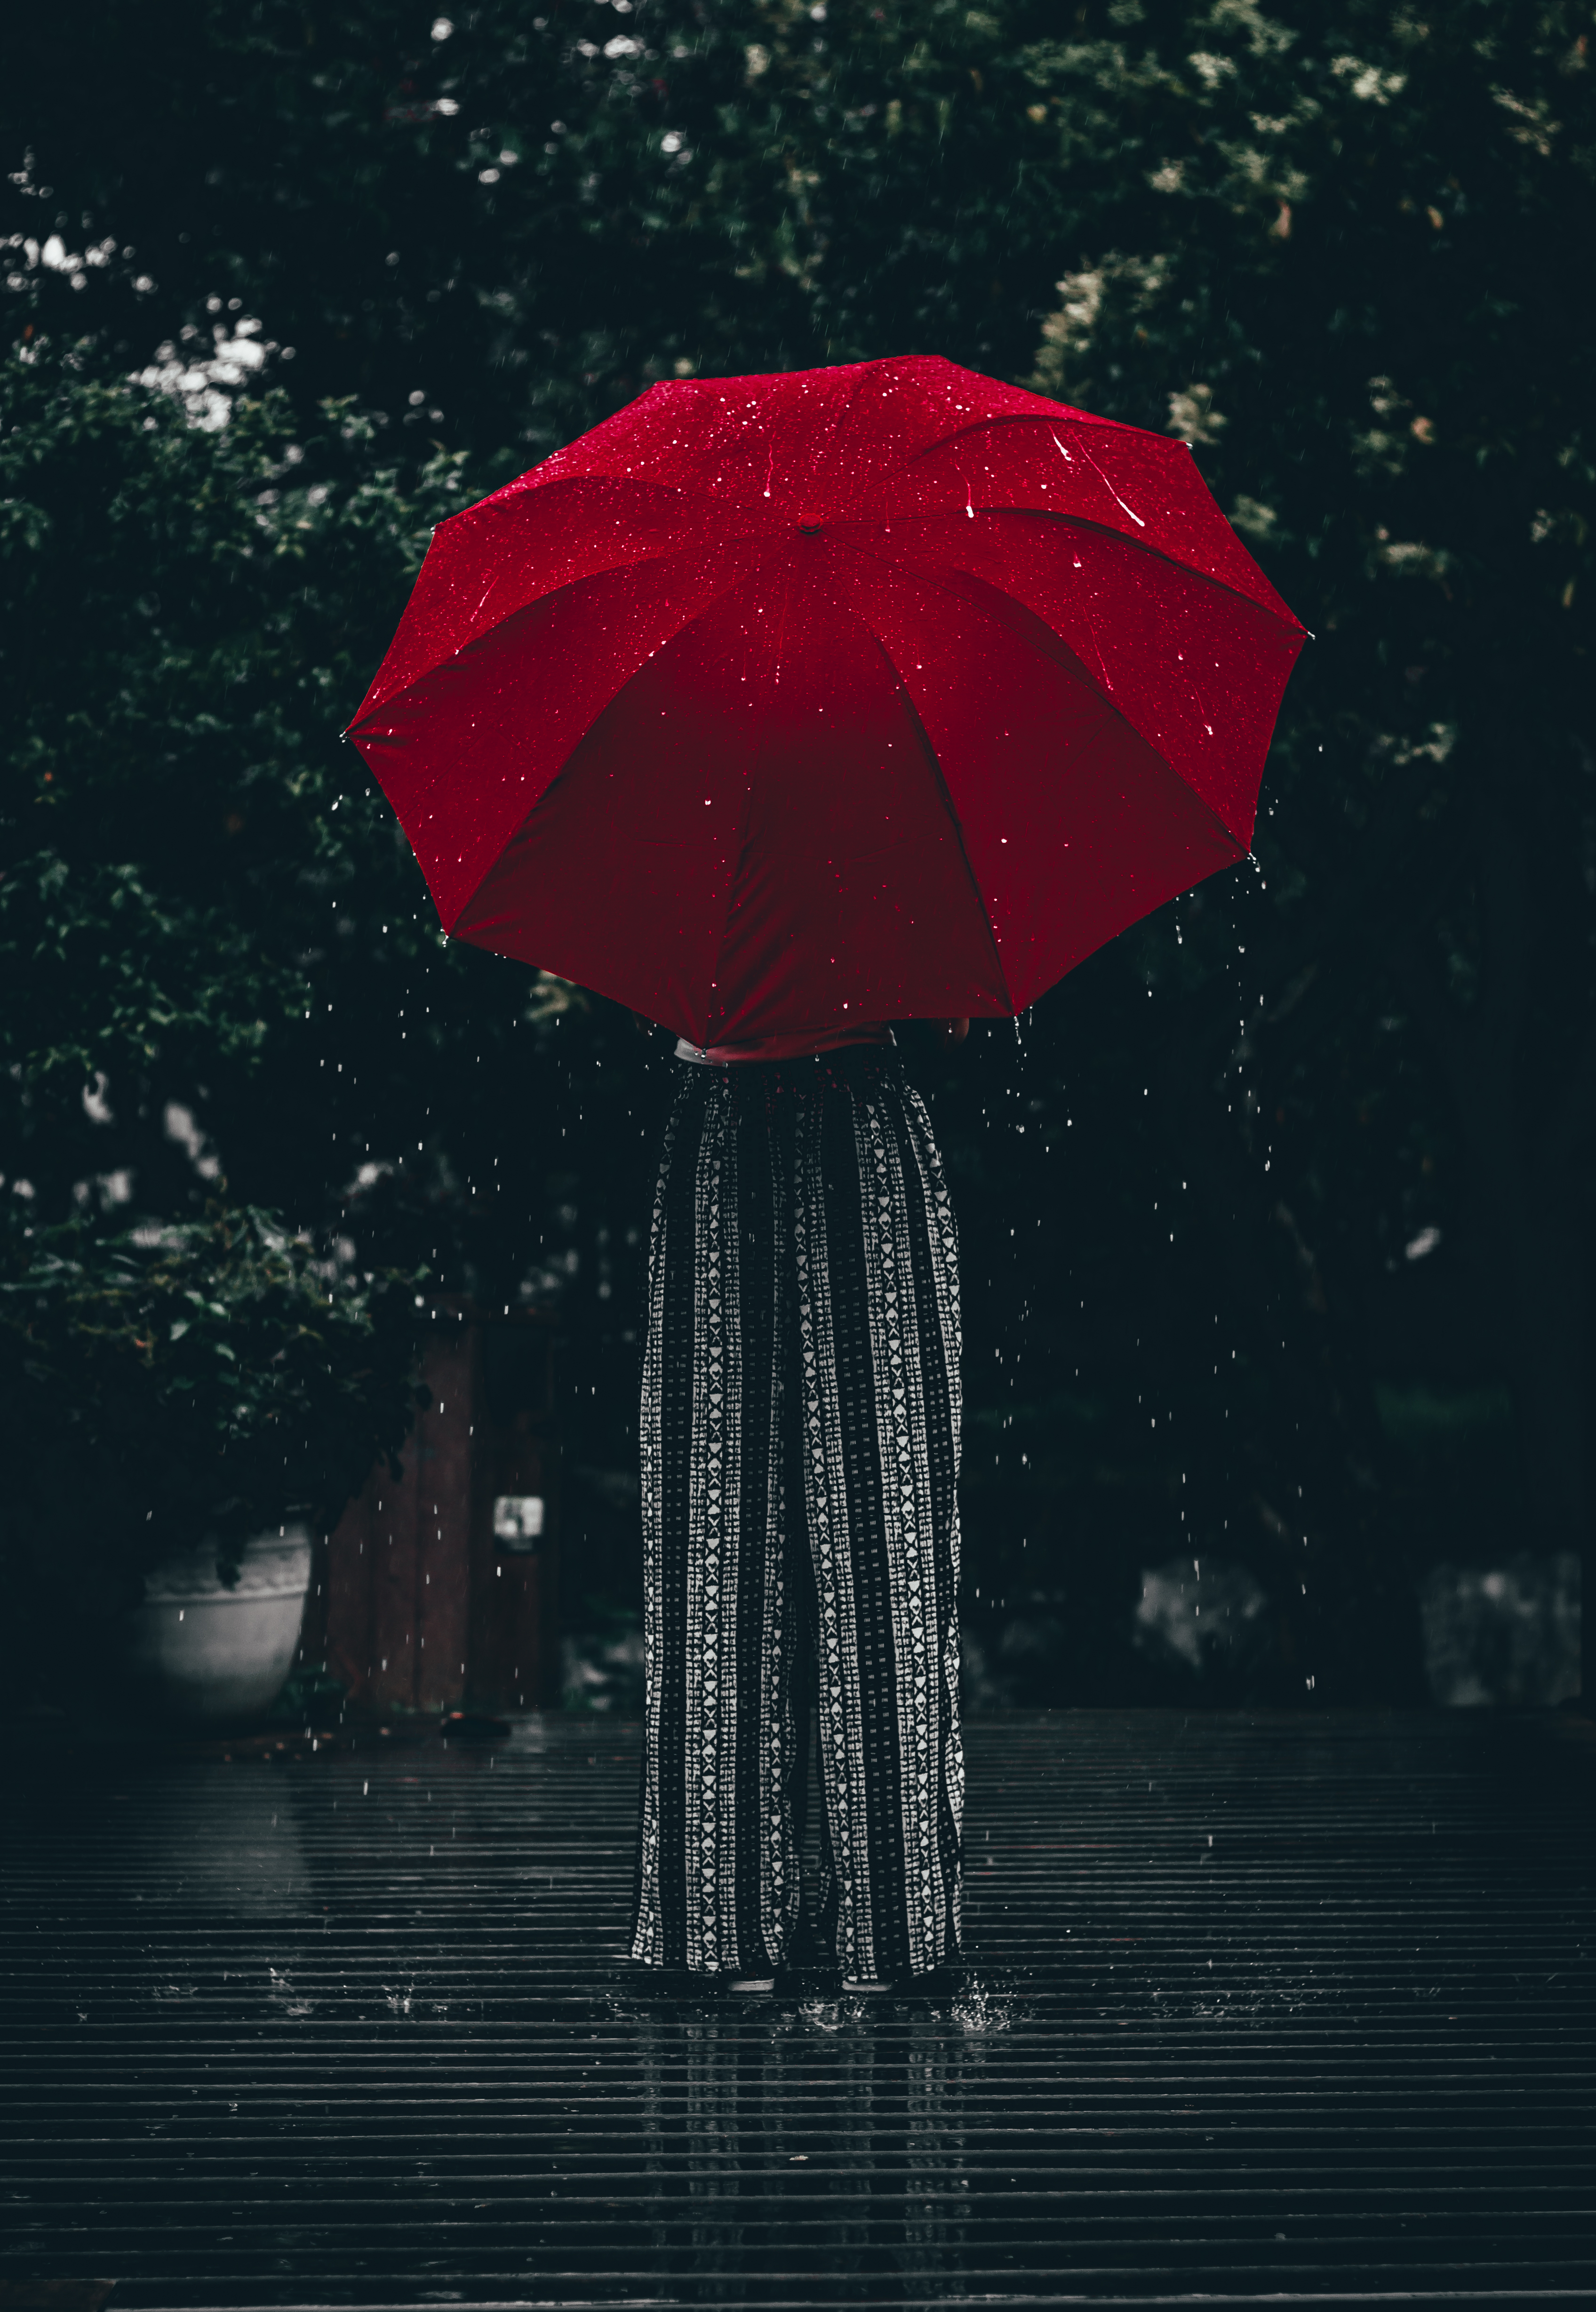 Raindrop Wallpaper Iphone X Rain Pictures Hd Download Free Images On Unsplash